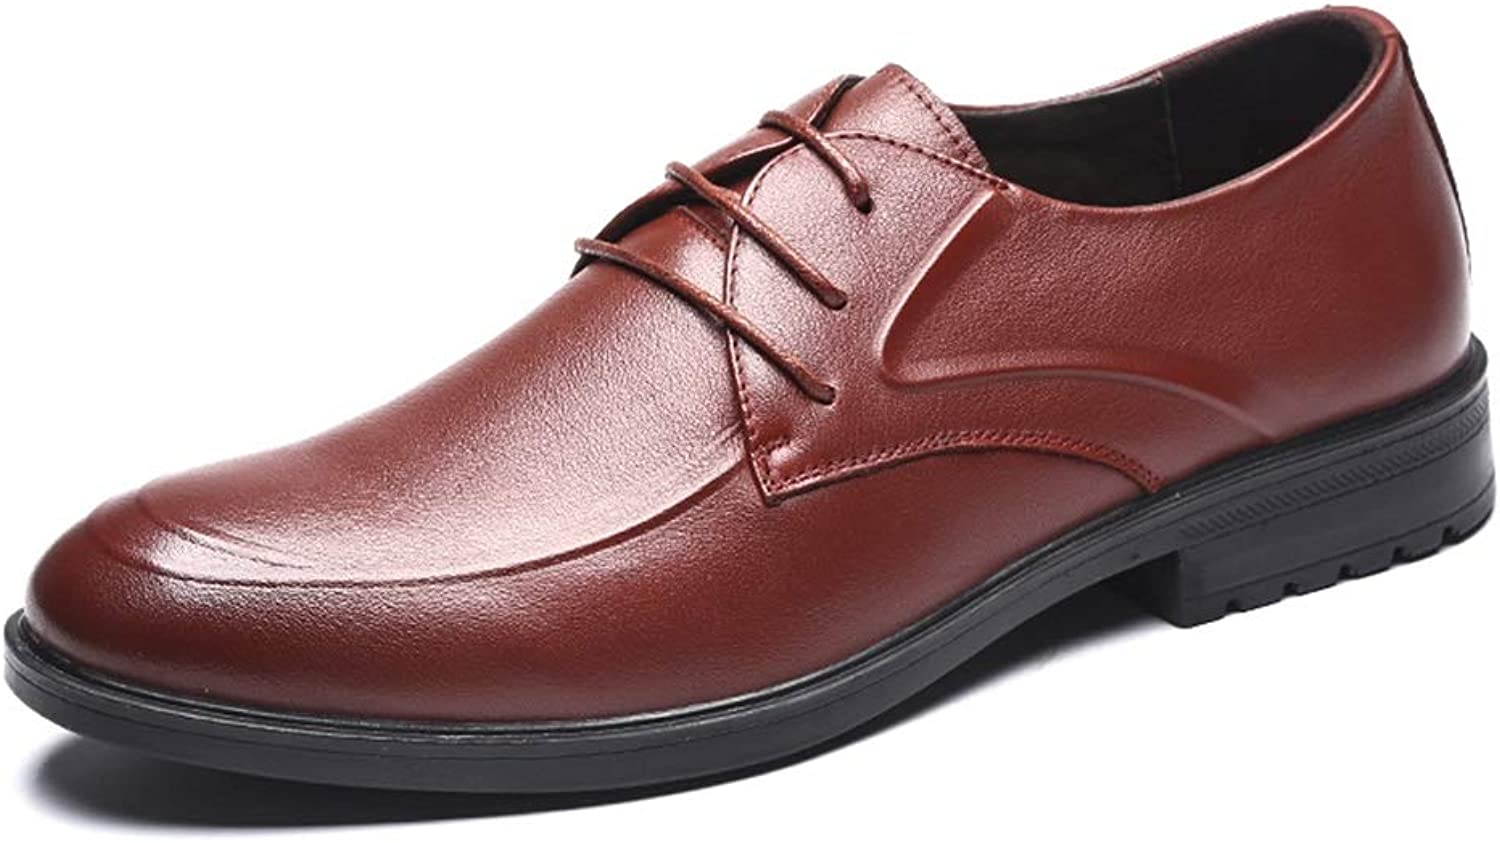 LXLA- Men's Business Casual Lace Up Leather shoes Mens Formal Comfortable Dress Loafers for Men (color   Brown, Size   7 US 6 UK)